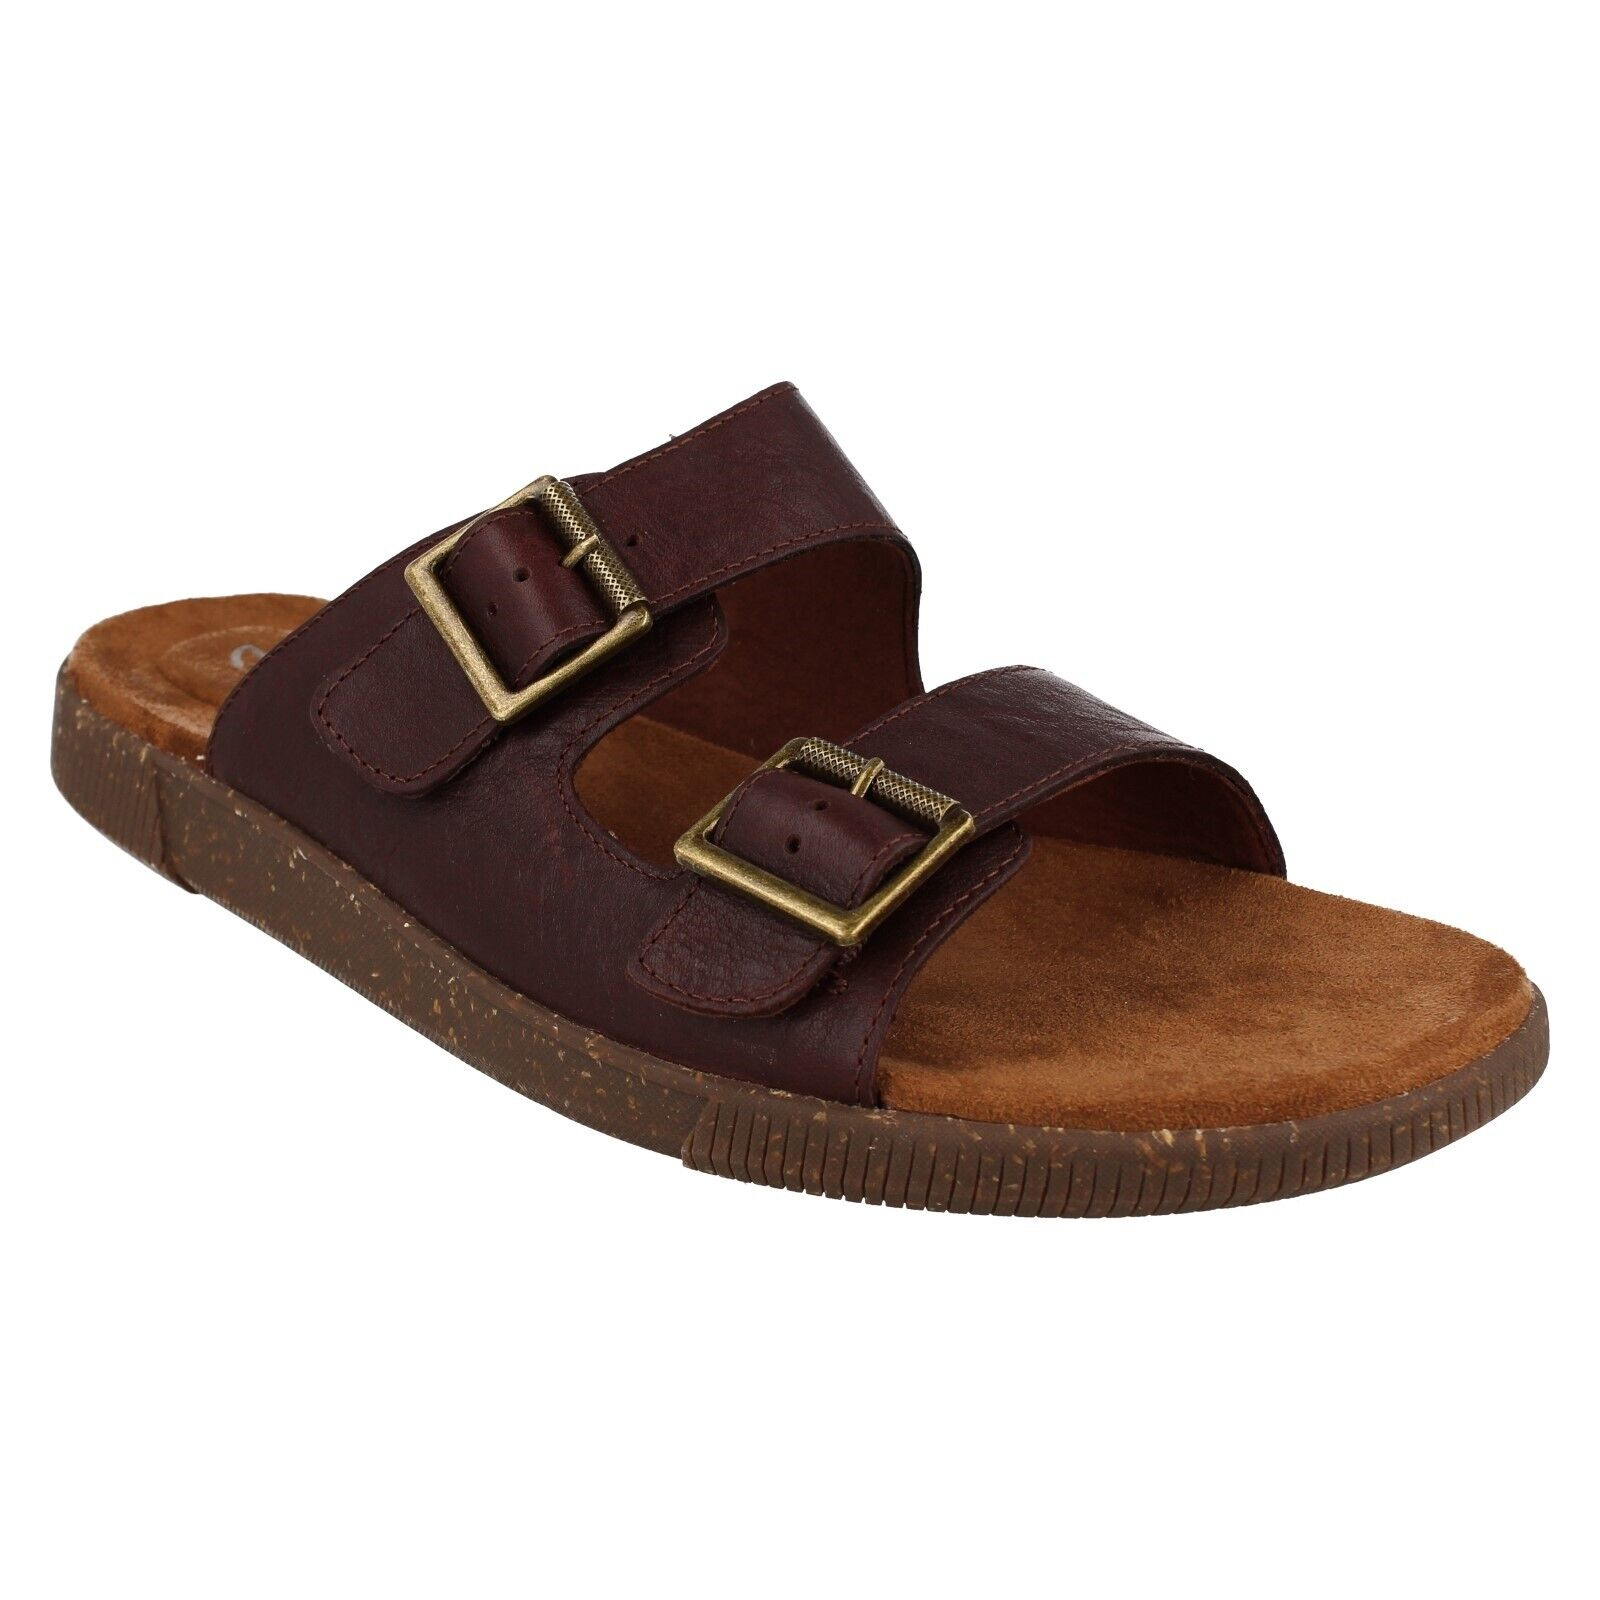 VINE CEDAR MENS CLARKS LEATHER SLIP ON CASUAL OPEN TOE SUMMER BUCKLE SANDALS